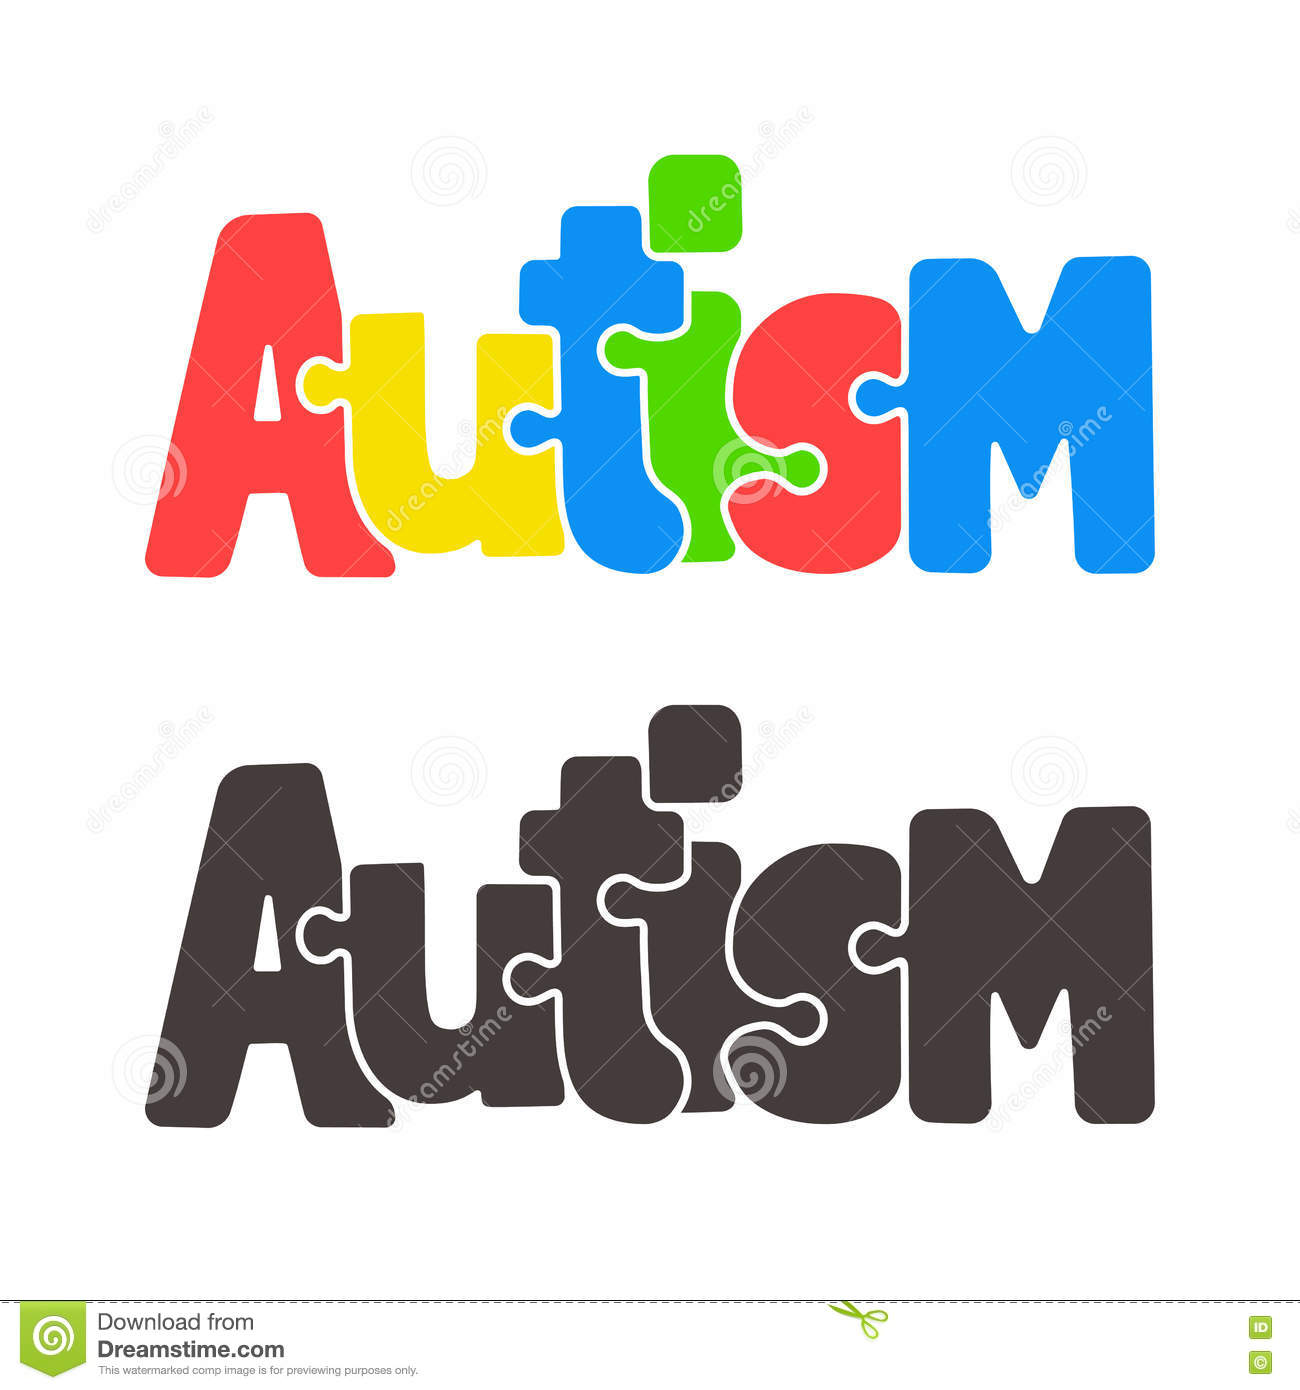 Autism jigsaw puzzle text stock vector  Illustration of graphic